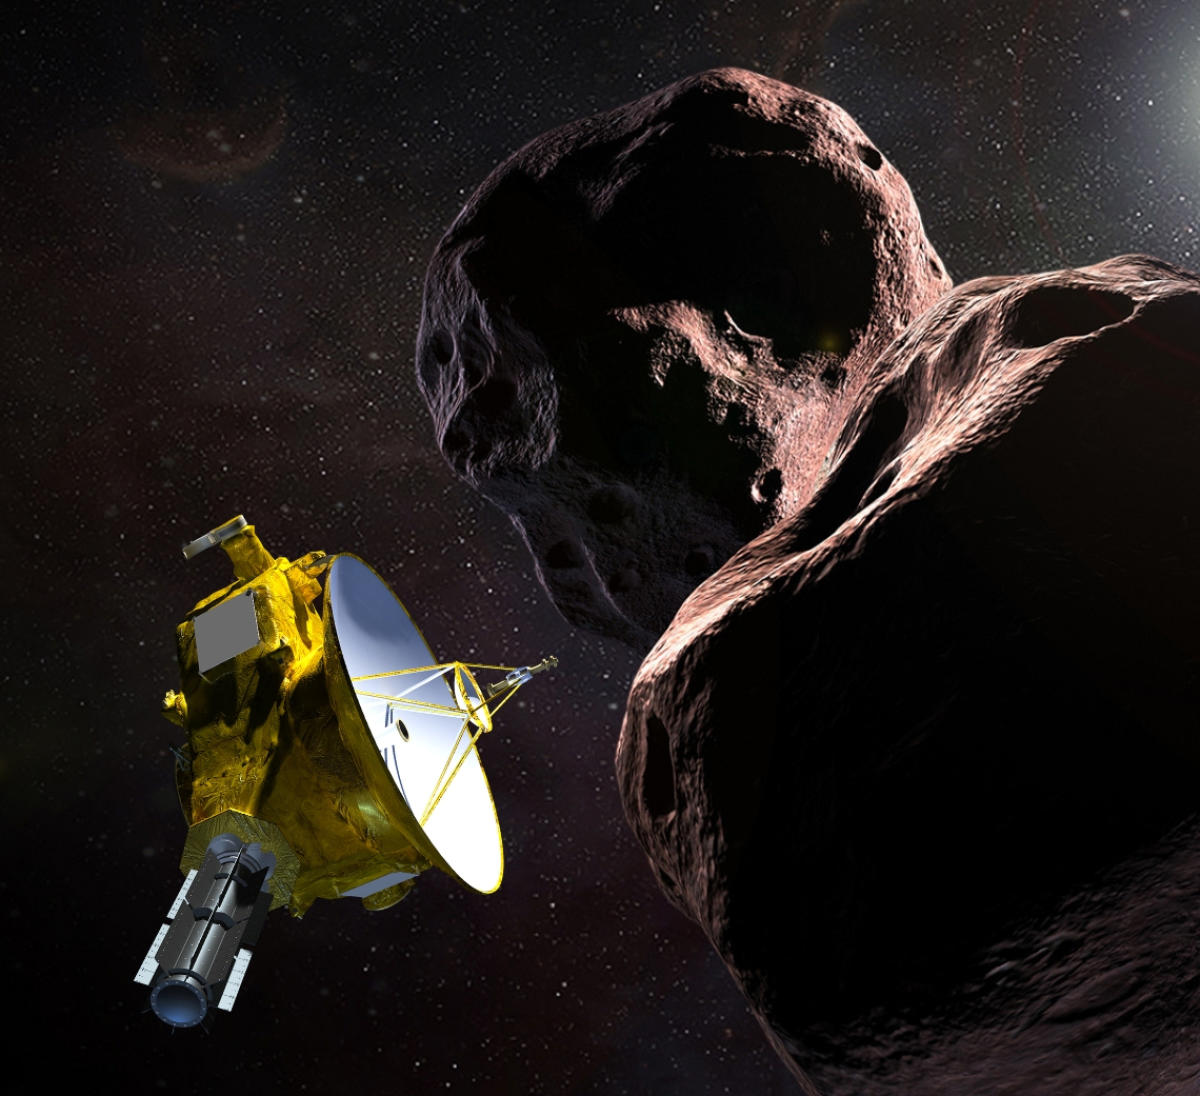 """This artist's illustration obtained from NASA on December 21, 2018 shows the New Horizons spacecraft encountering 2014 MU69 – nicknamed """"Ultima Thule"""" – a Kuiper Belt object that orbits one billion miles beyond Pluto. (Photo by HO / NASA/JHUAPL/SwRI / AFP)"""